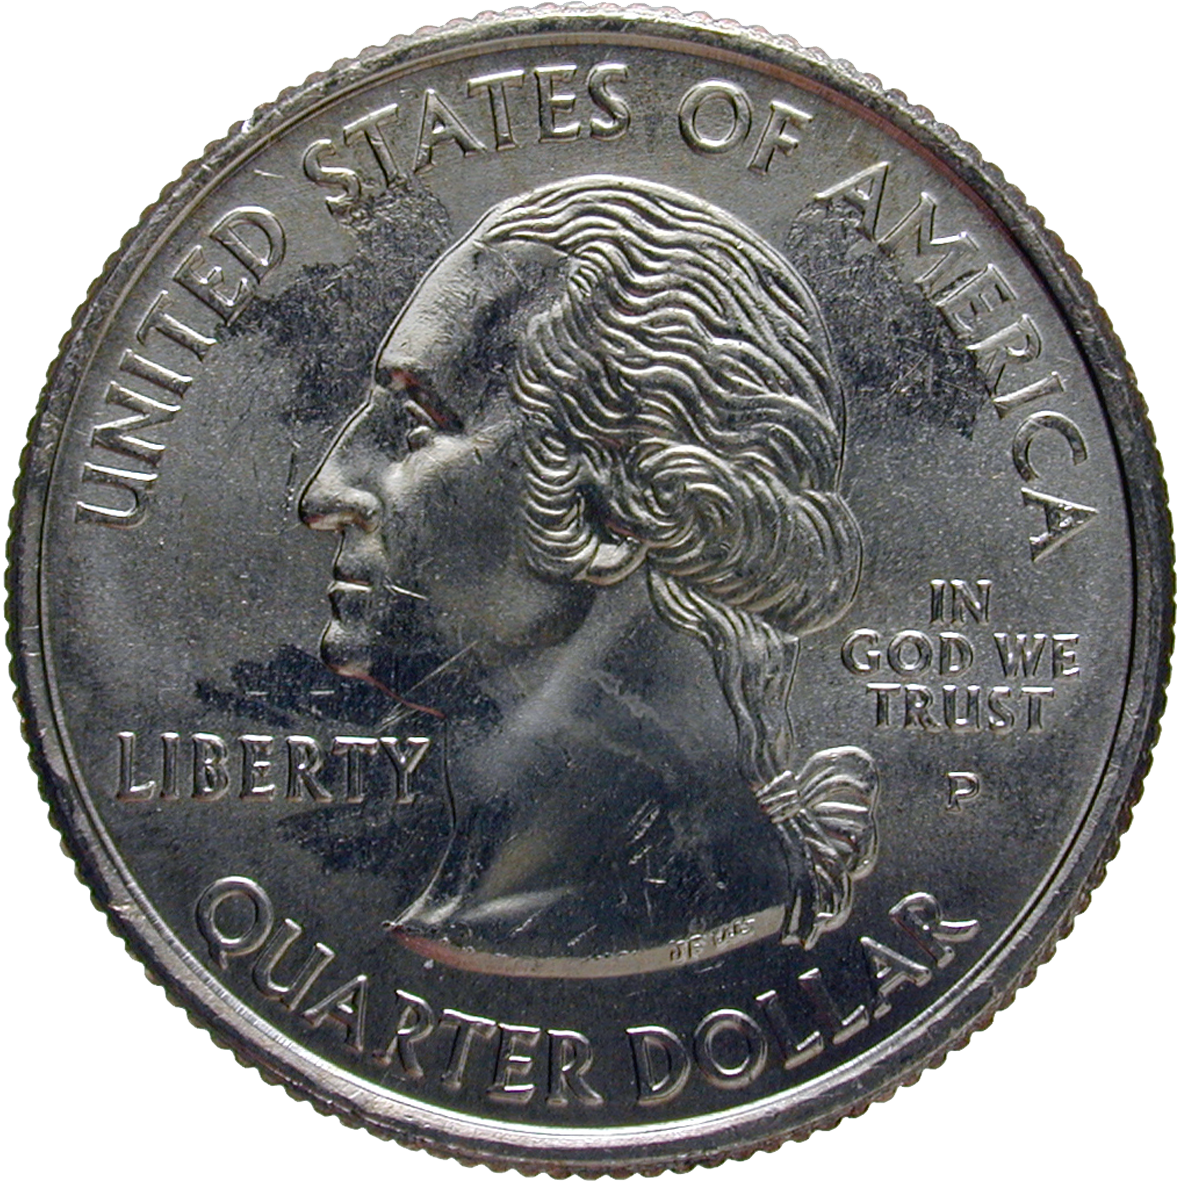 United States of America, Quarter Dollar 2007 (obverse)